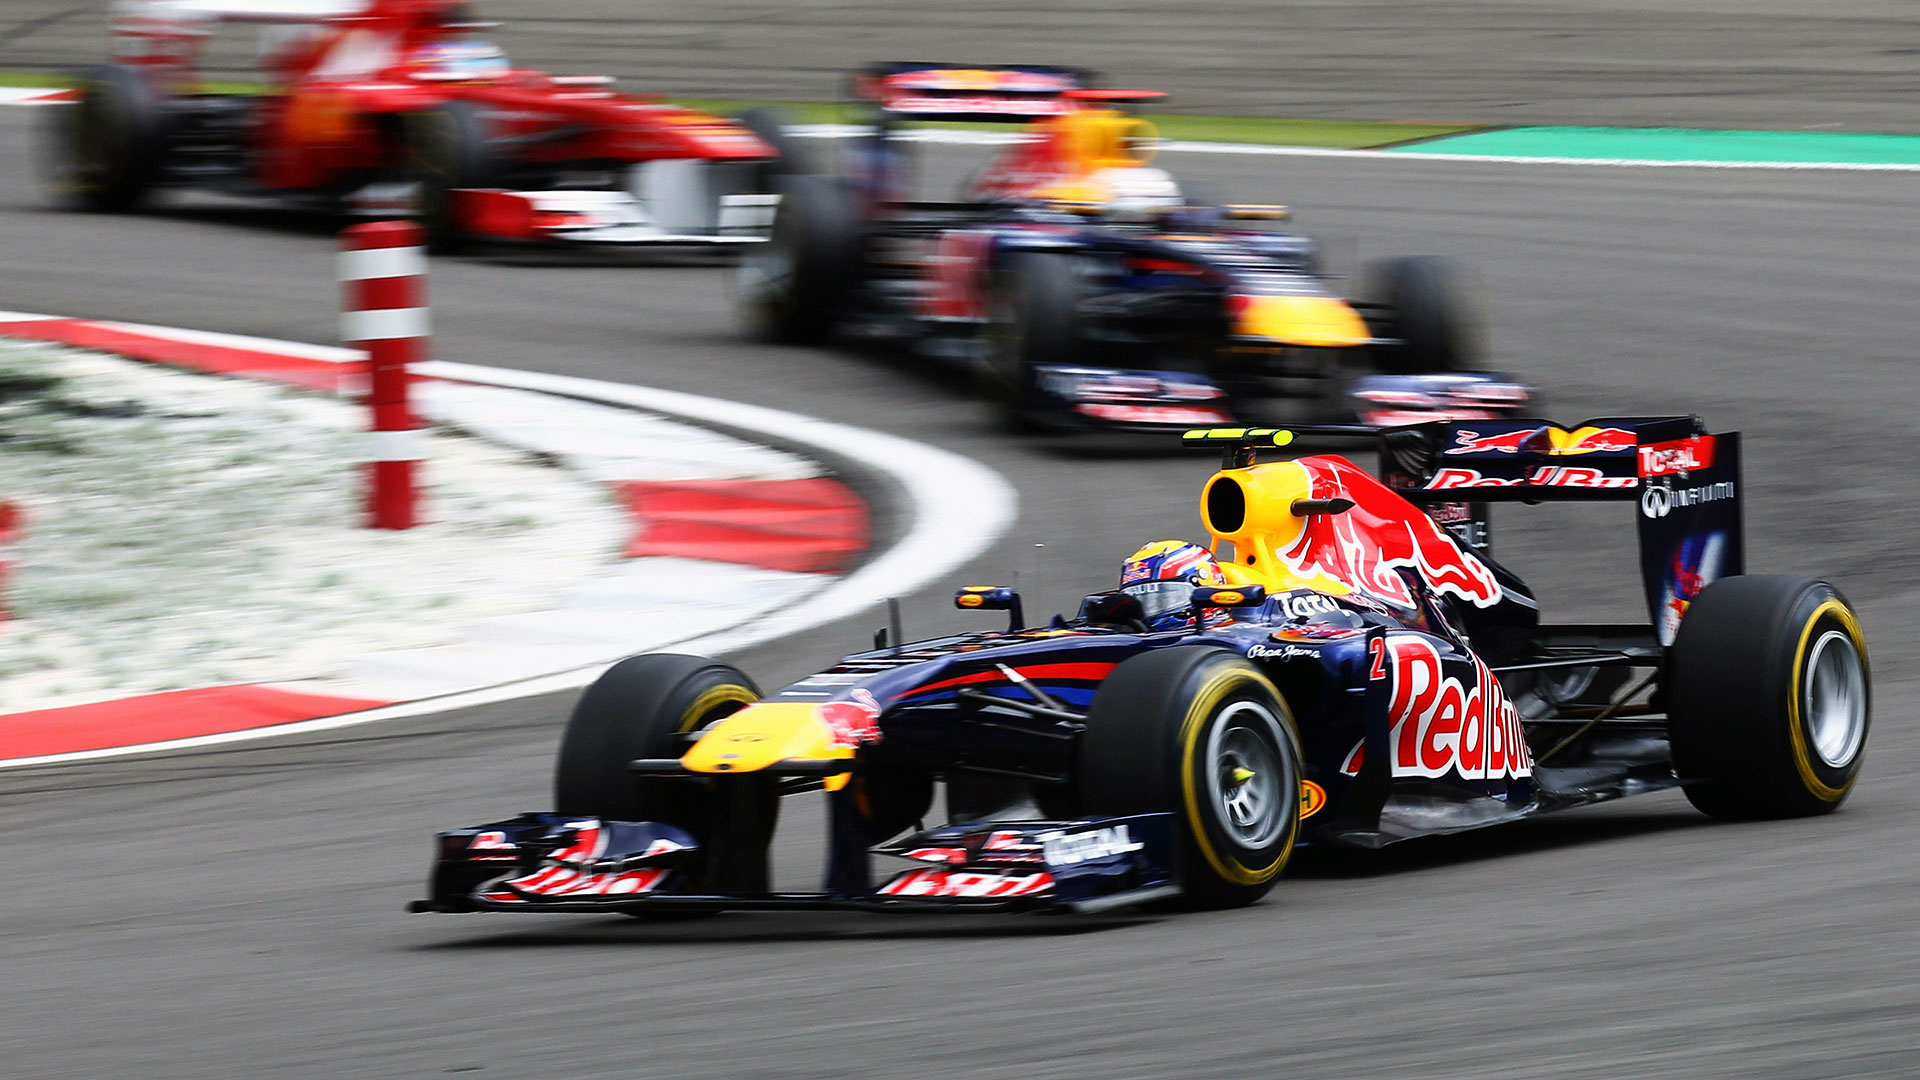 hd wallpapers 2011 formula 1 grand prix of germany | f1-fansite